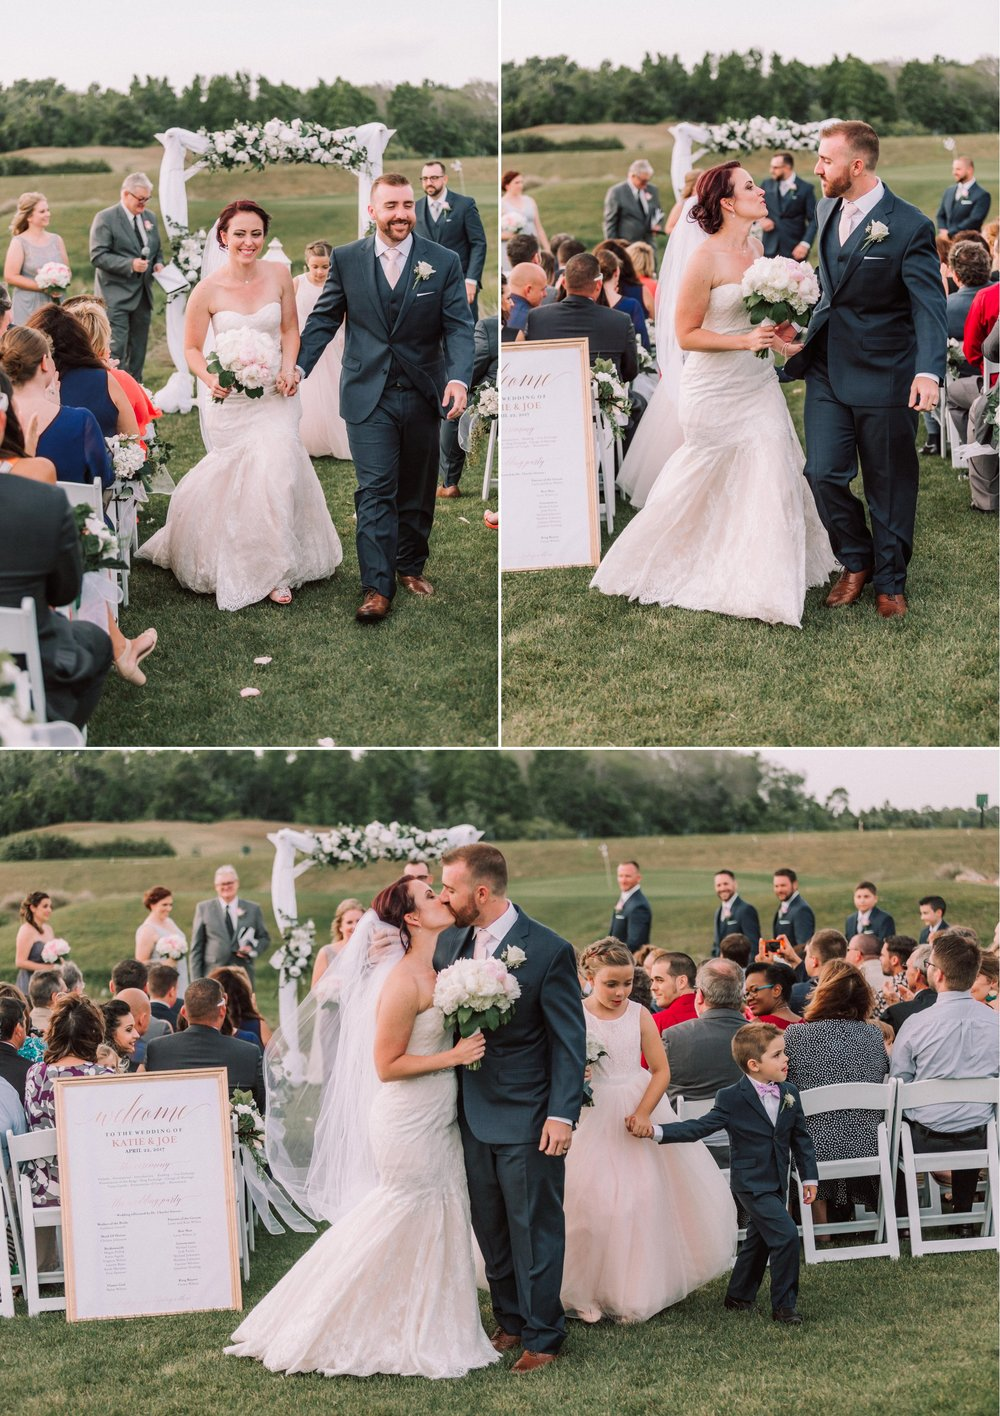 Romantic Pink Spring Wedding - Katie + Joe by Orlando Wedding Photographer Shaina DeCiryan 67.jpg